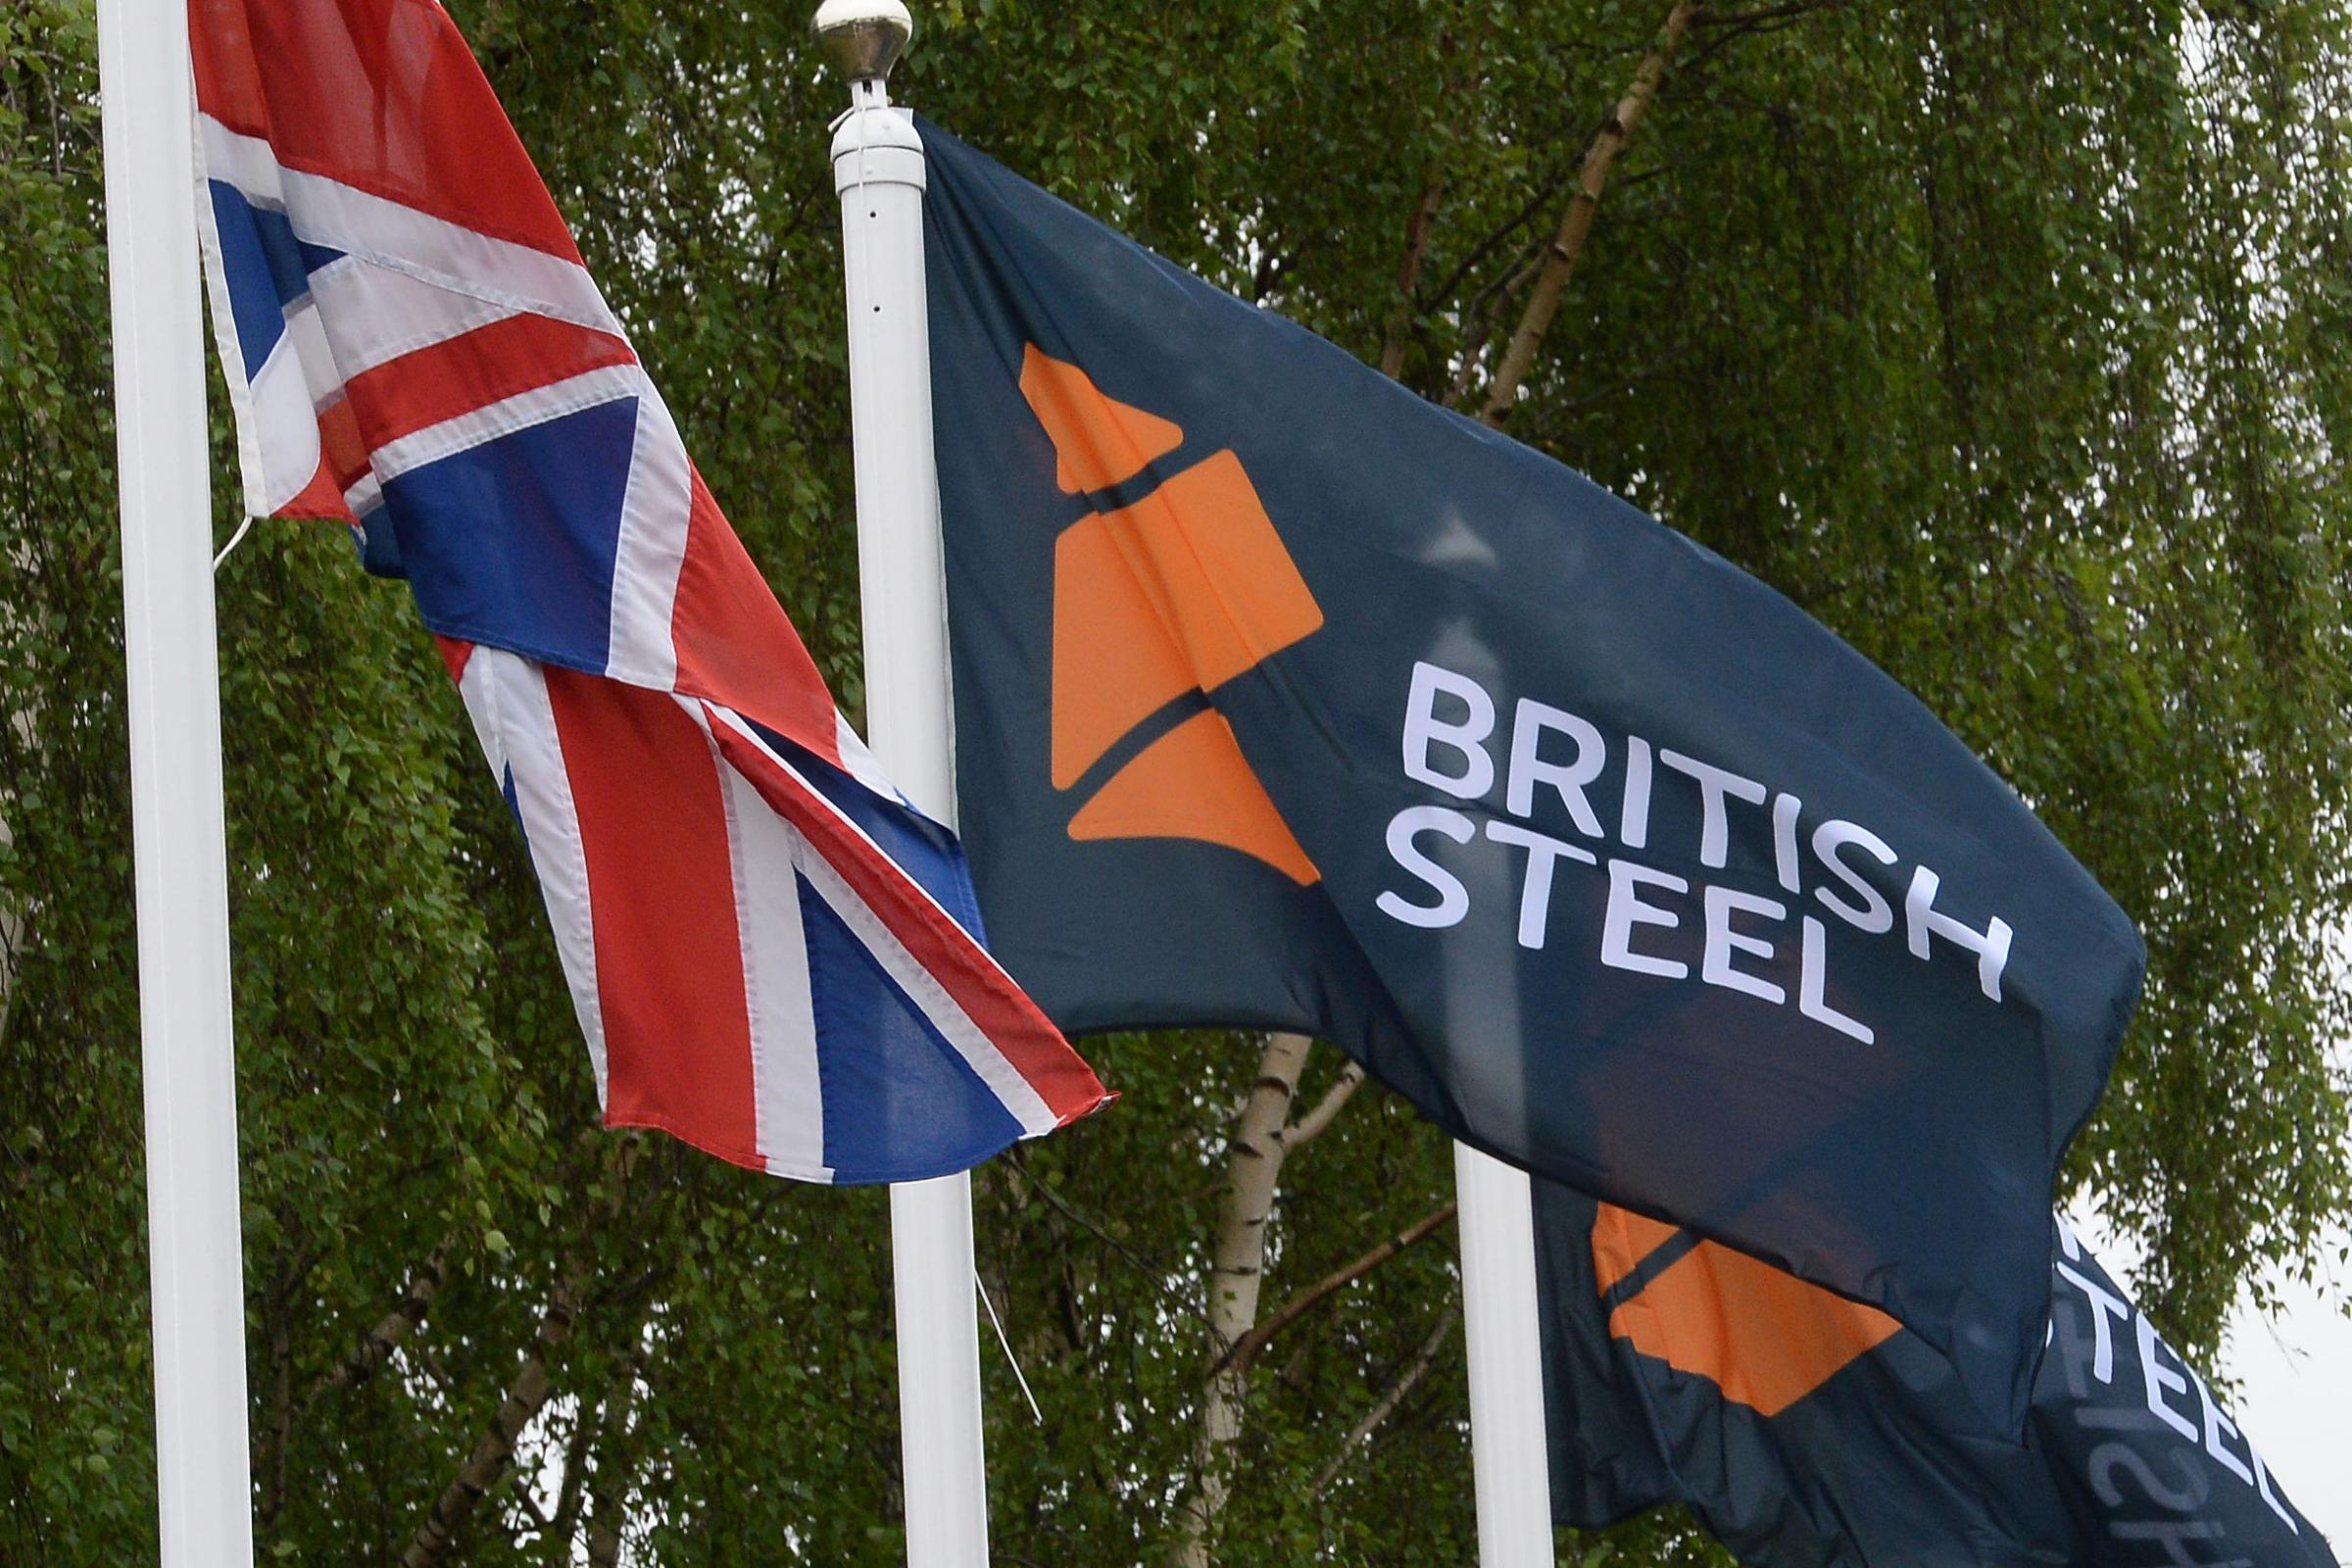 British Steel employs more than 4,000 workers, mainly in Scunthorpe